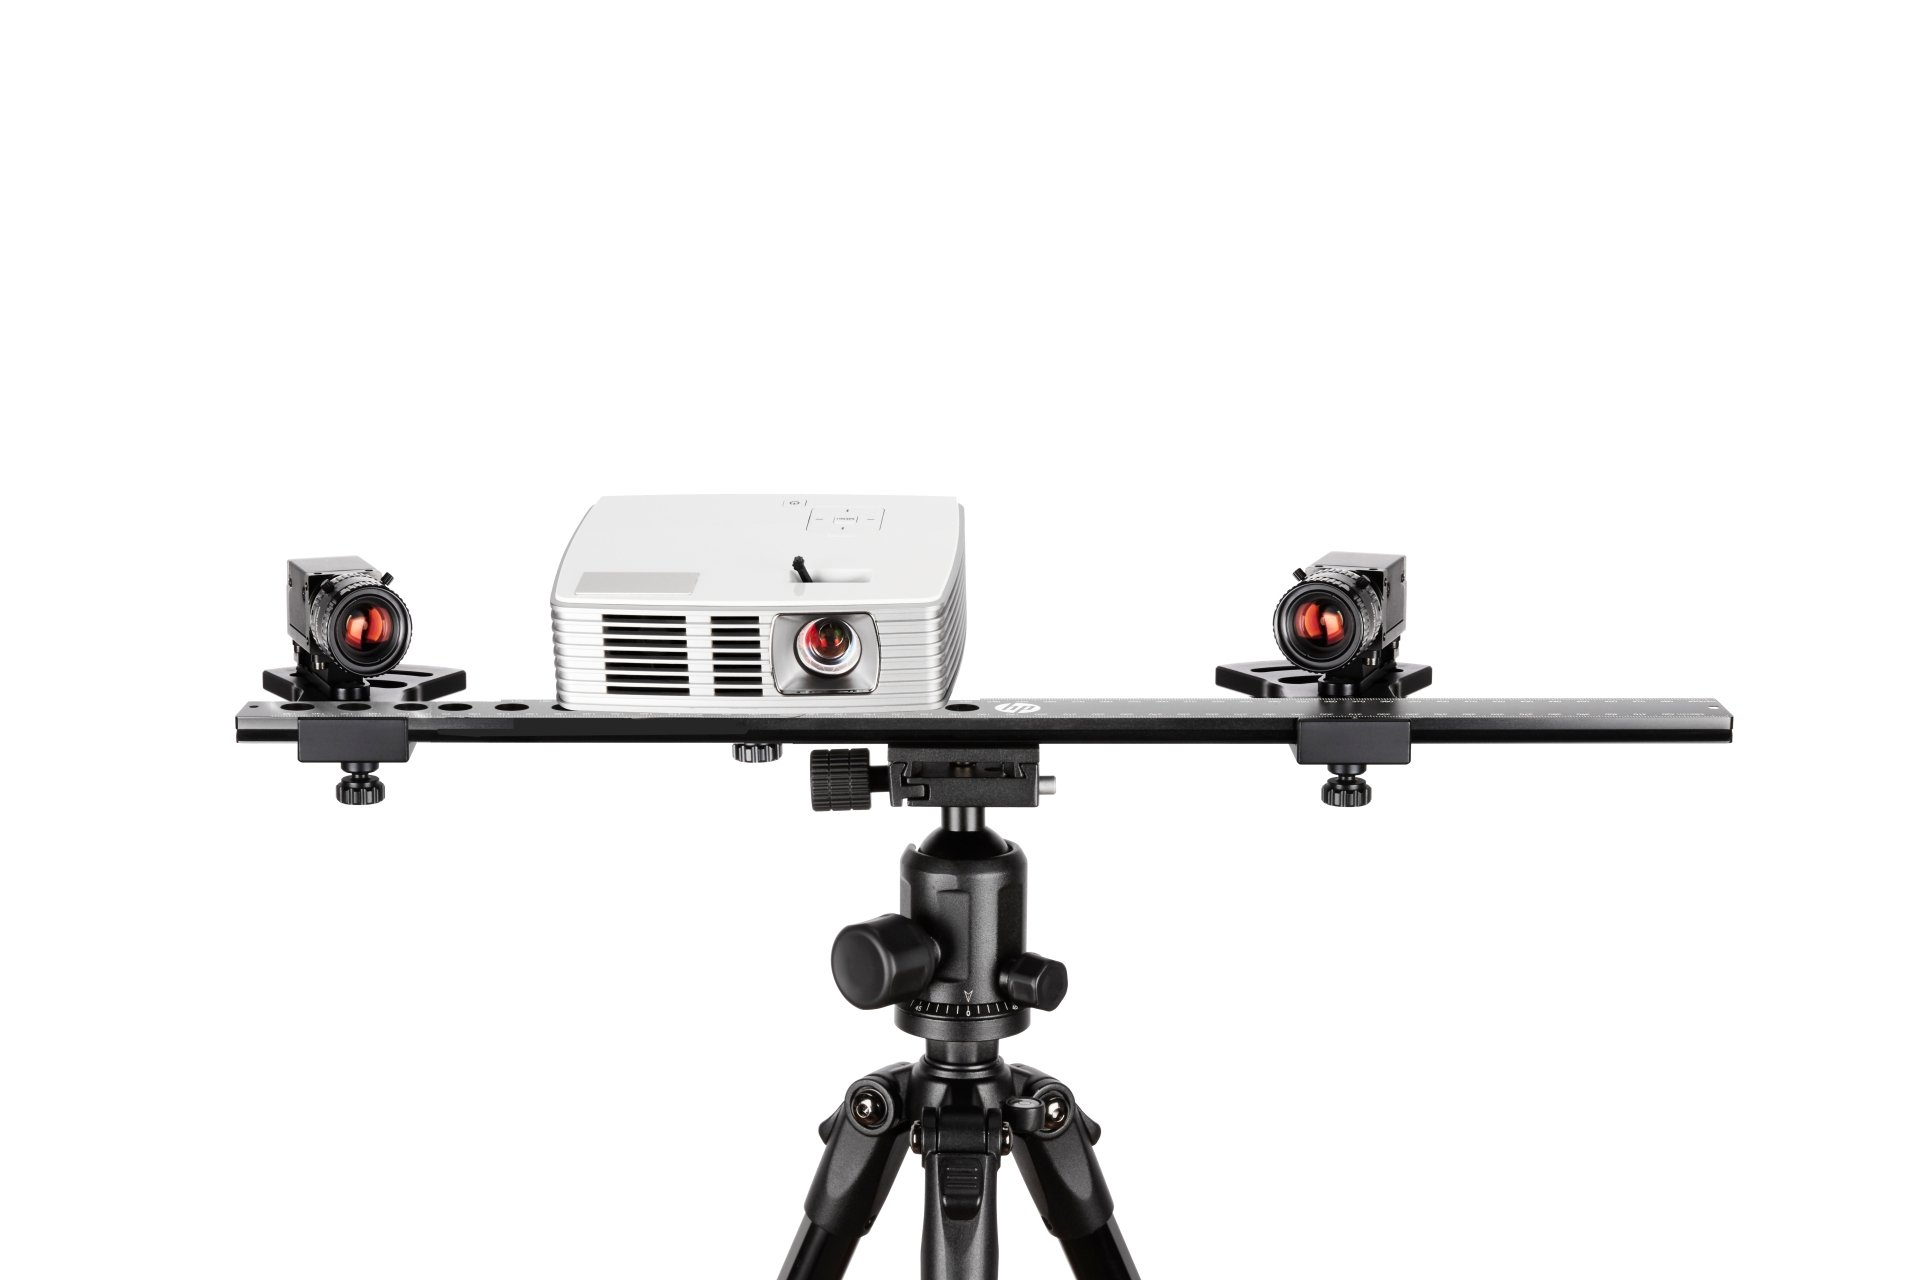 HP 3D Structured Light Scanner Pro S3 with Dual Camera